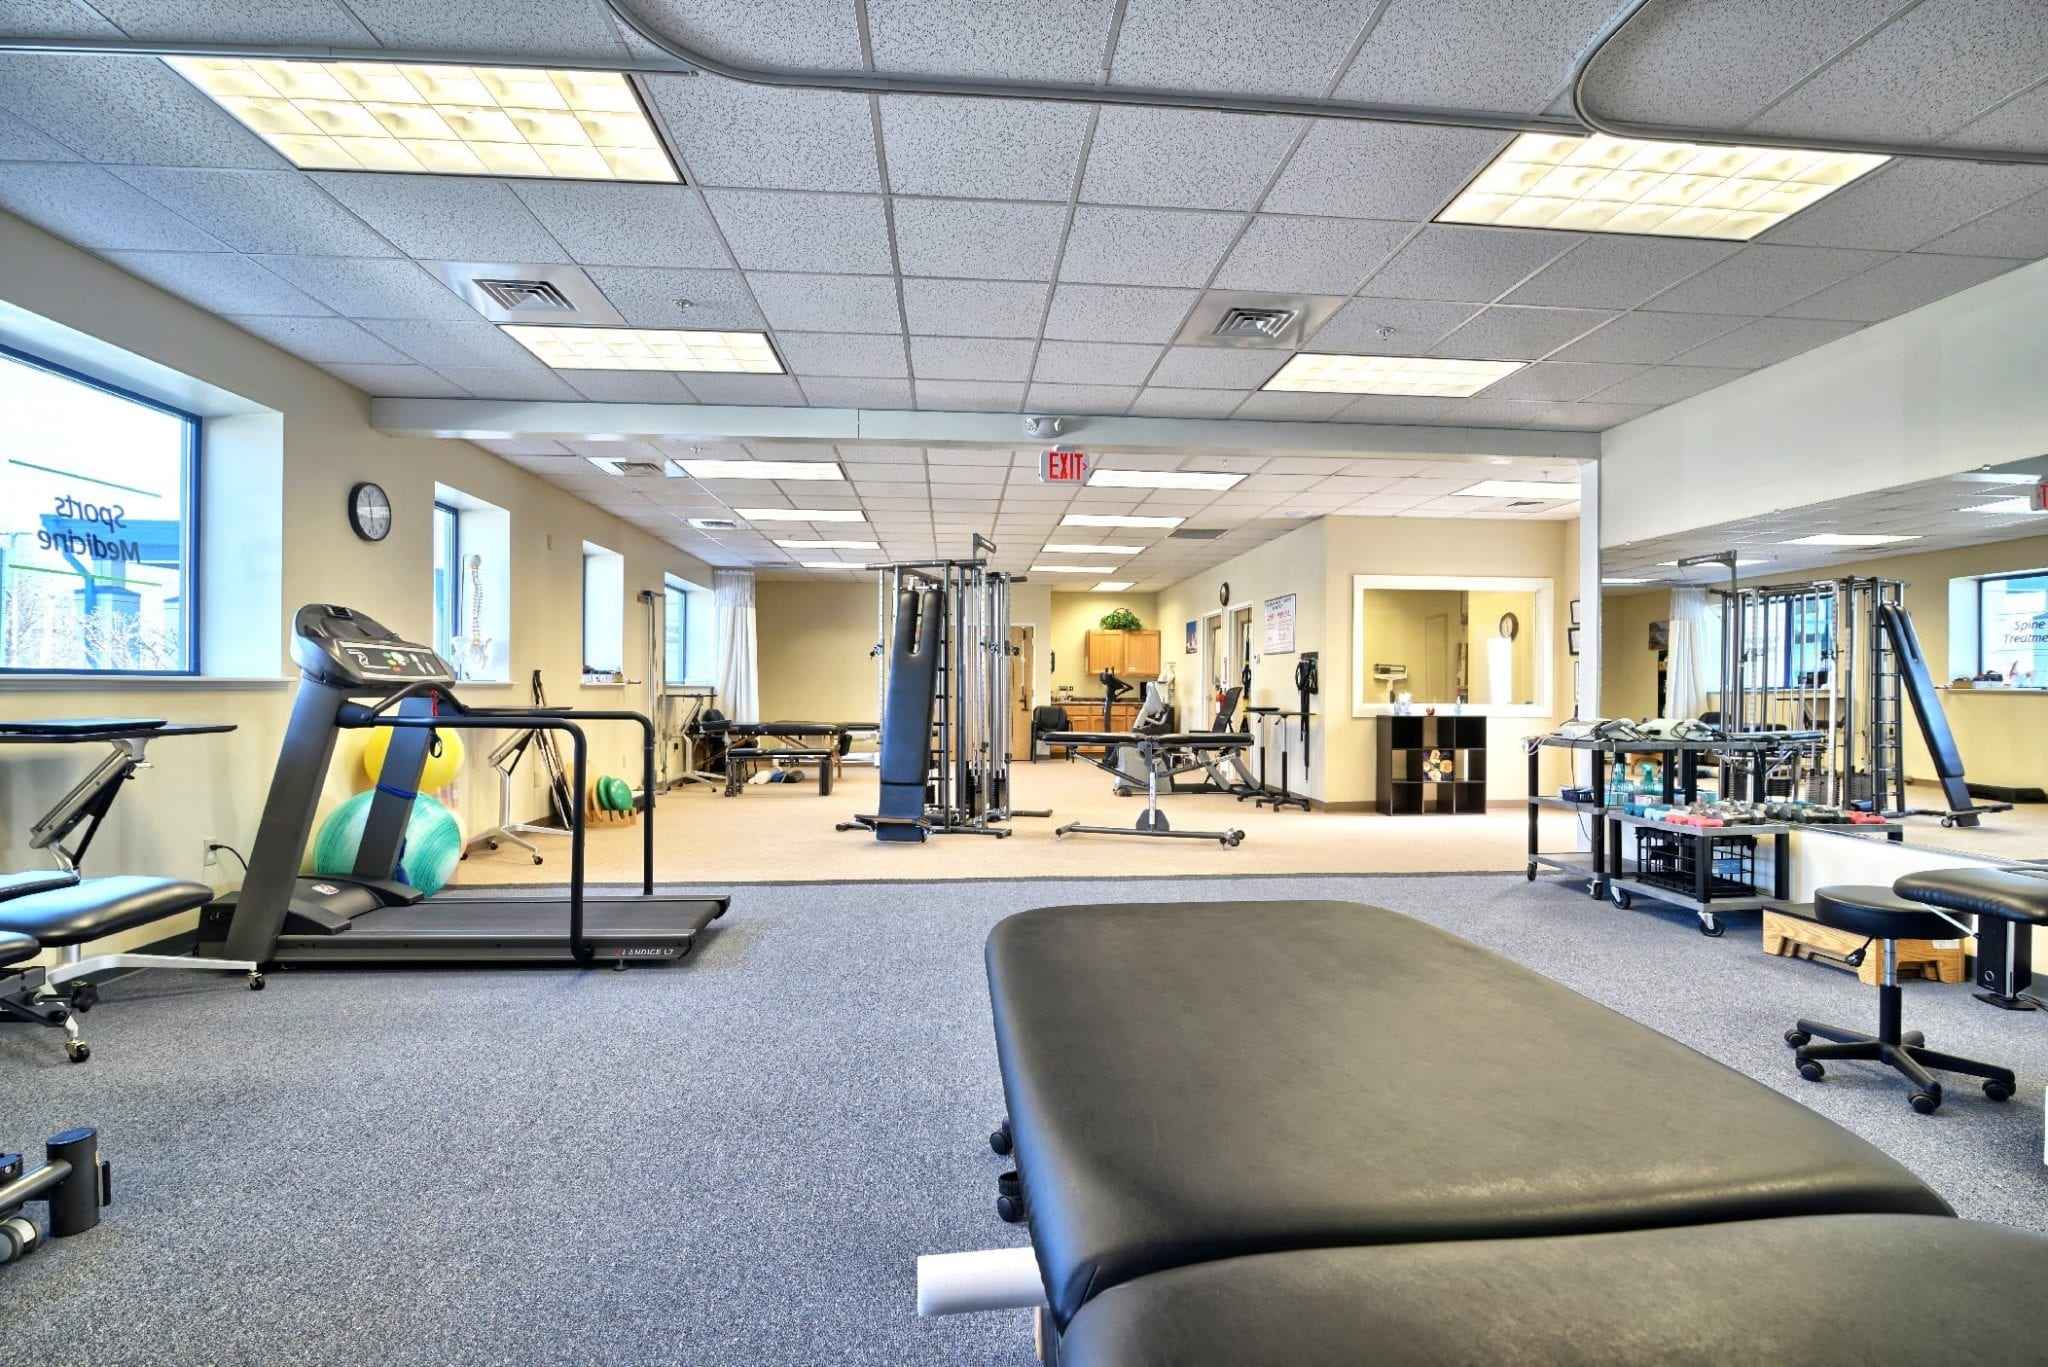 An image of the well maintained equipment at our physical therapy clinic in Amesbury, Massachusetts.